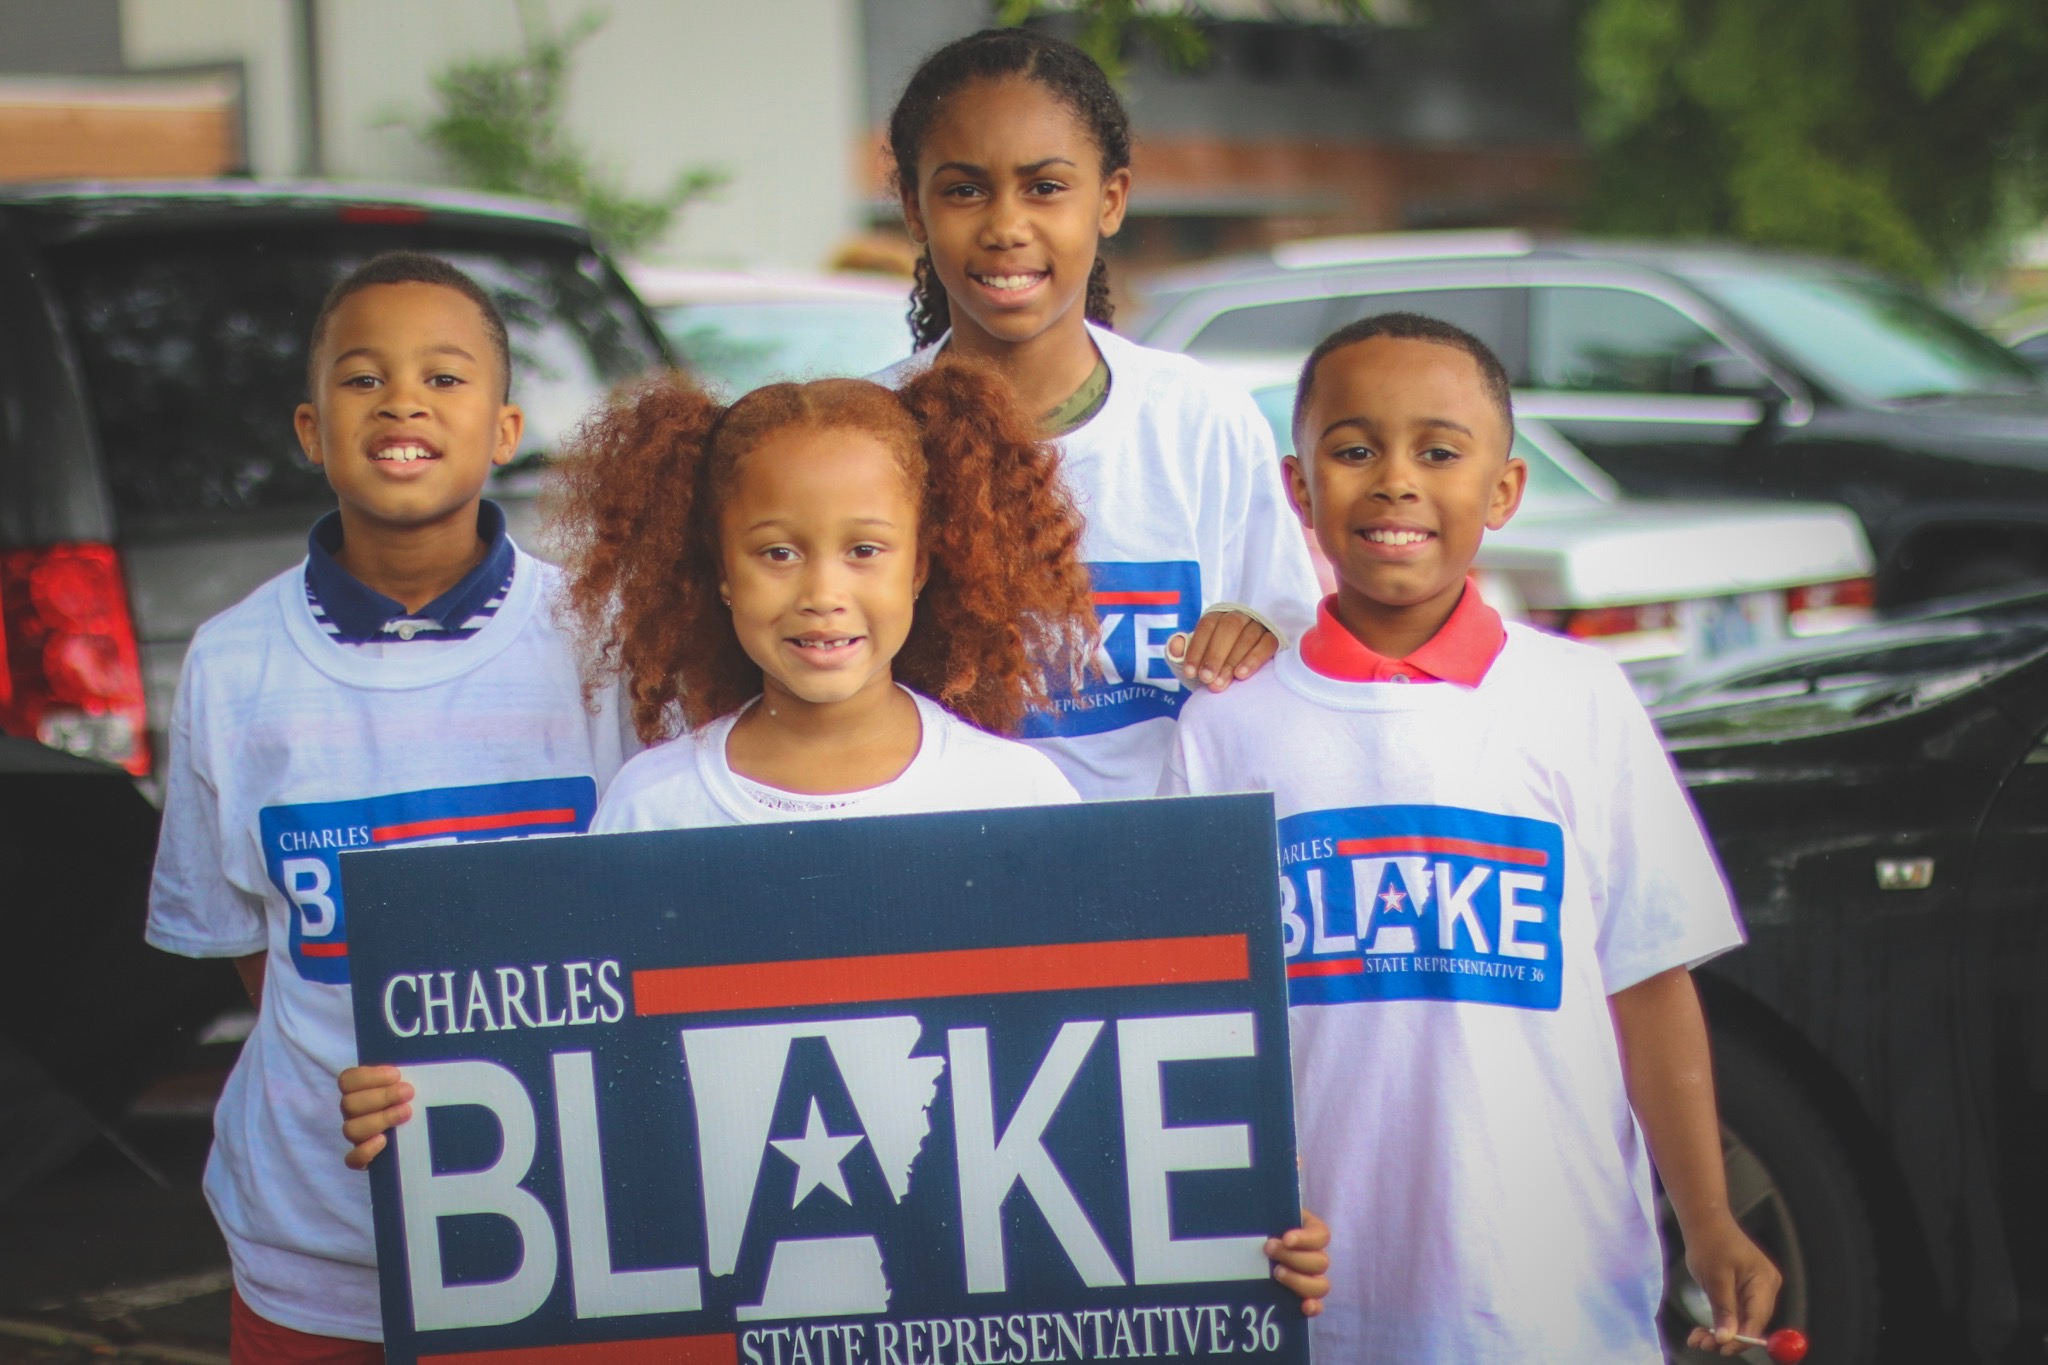 Charles III, Elizabeth, Chloey and Ari supporting their dad on election day.